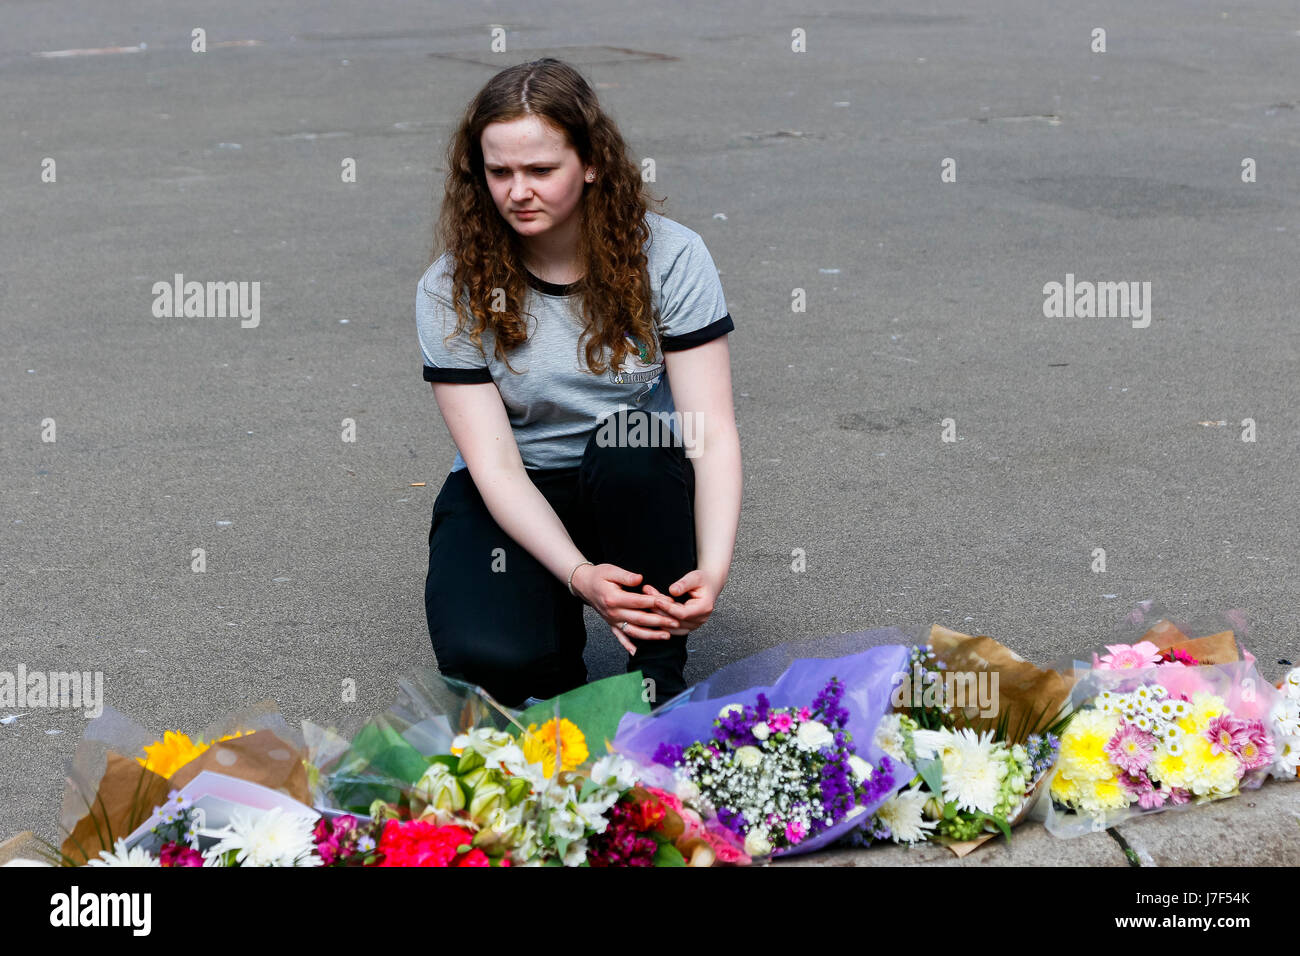 Glasgow, UK. 25th May, 2017. Billie Brennan, aged 18, from Port Glasgow was at George Square today to pay respects Stock Photo